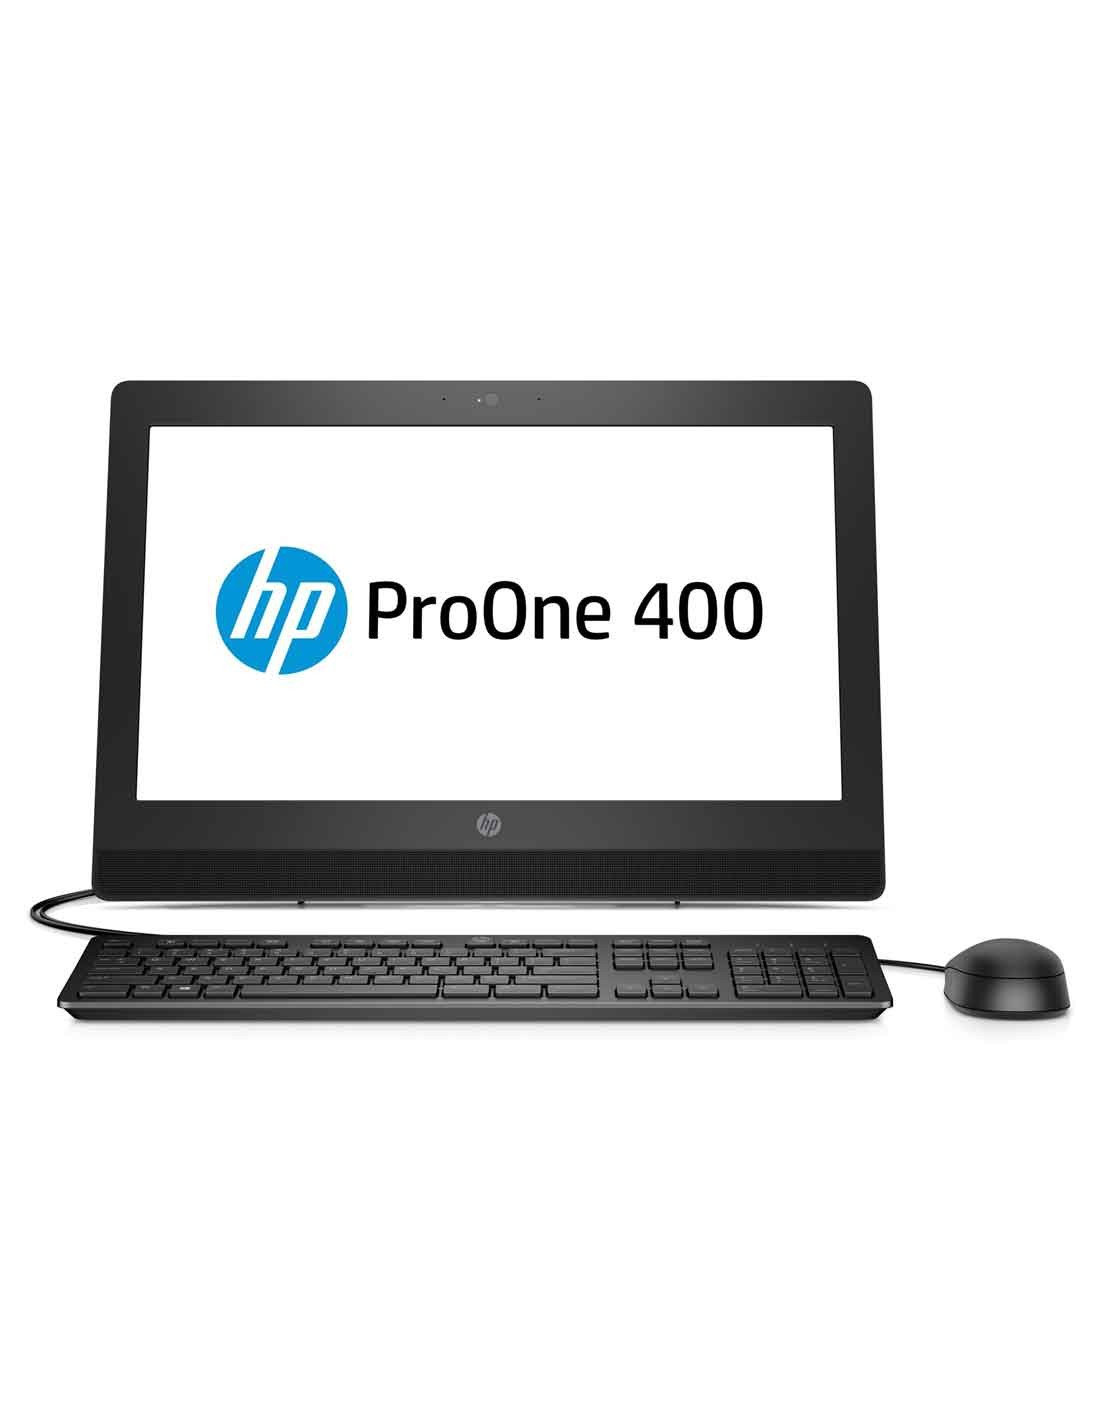 HP ProOne 400 G3 All-in-One at the cheapest price and fast free delivery in Dubai